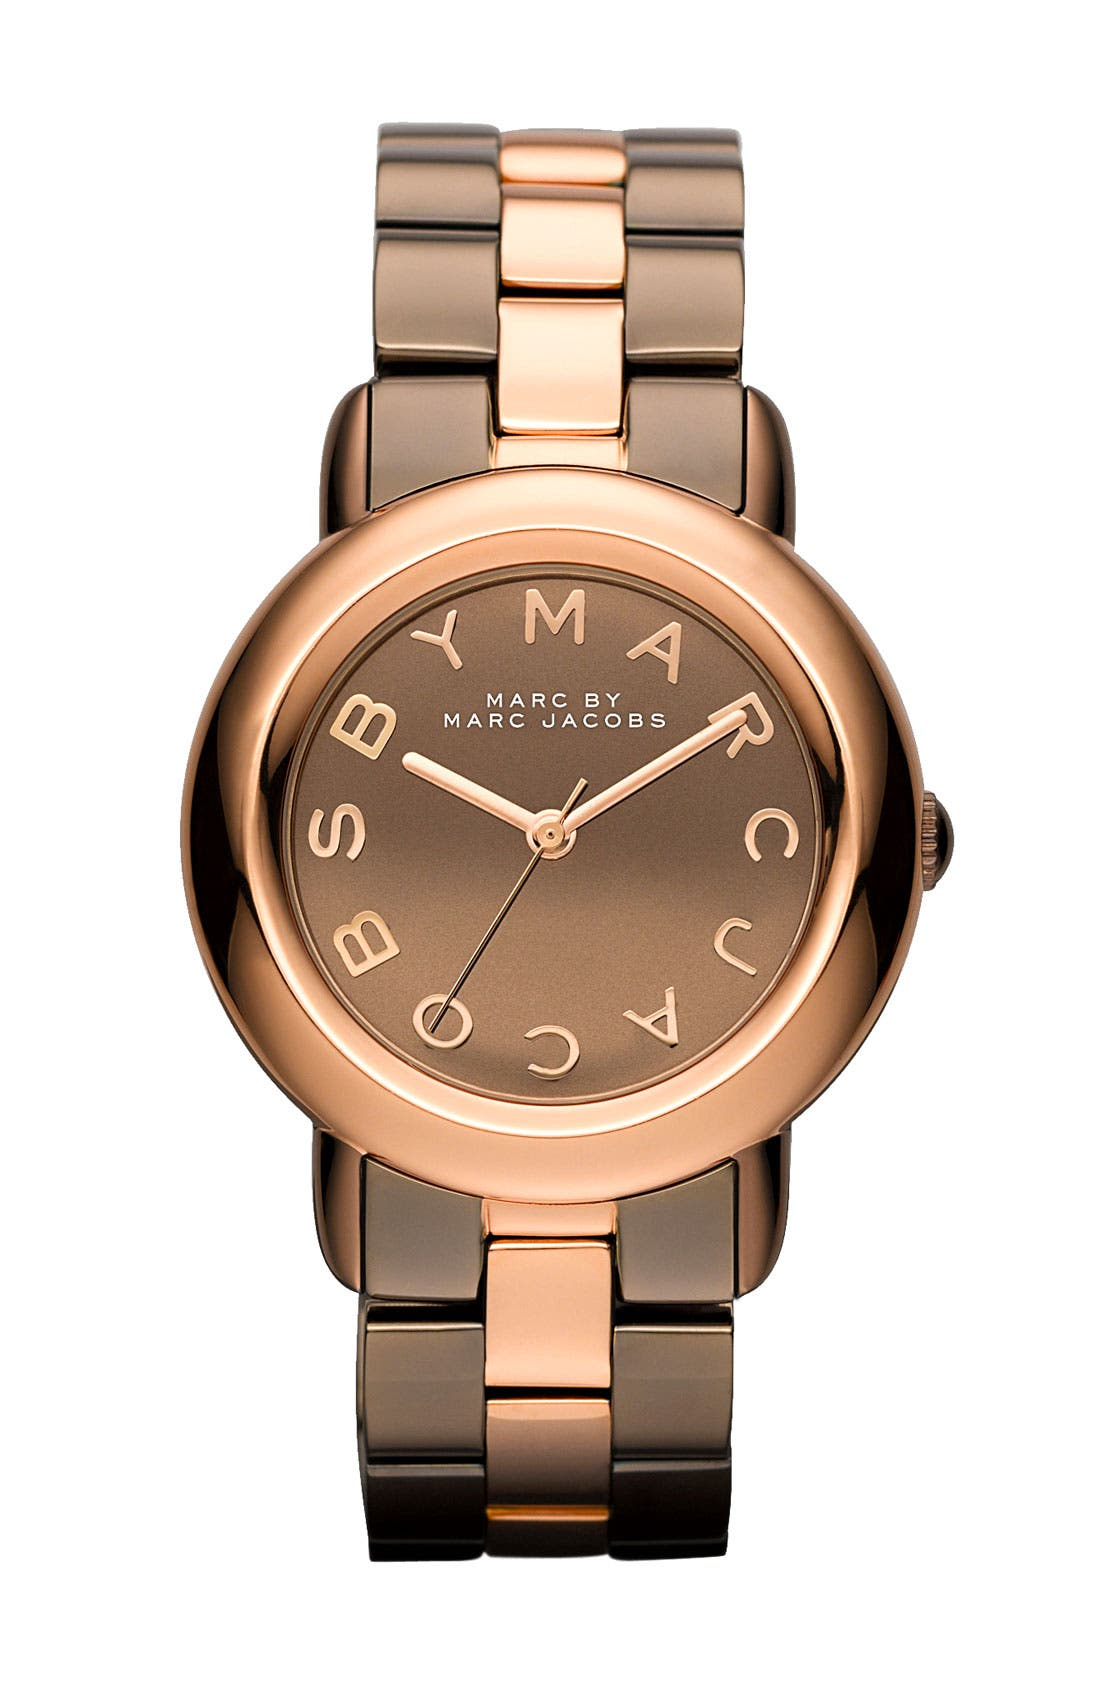 Main Image - MARC BY MARC JACOBS 'Marci' Mirror Dial Watch